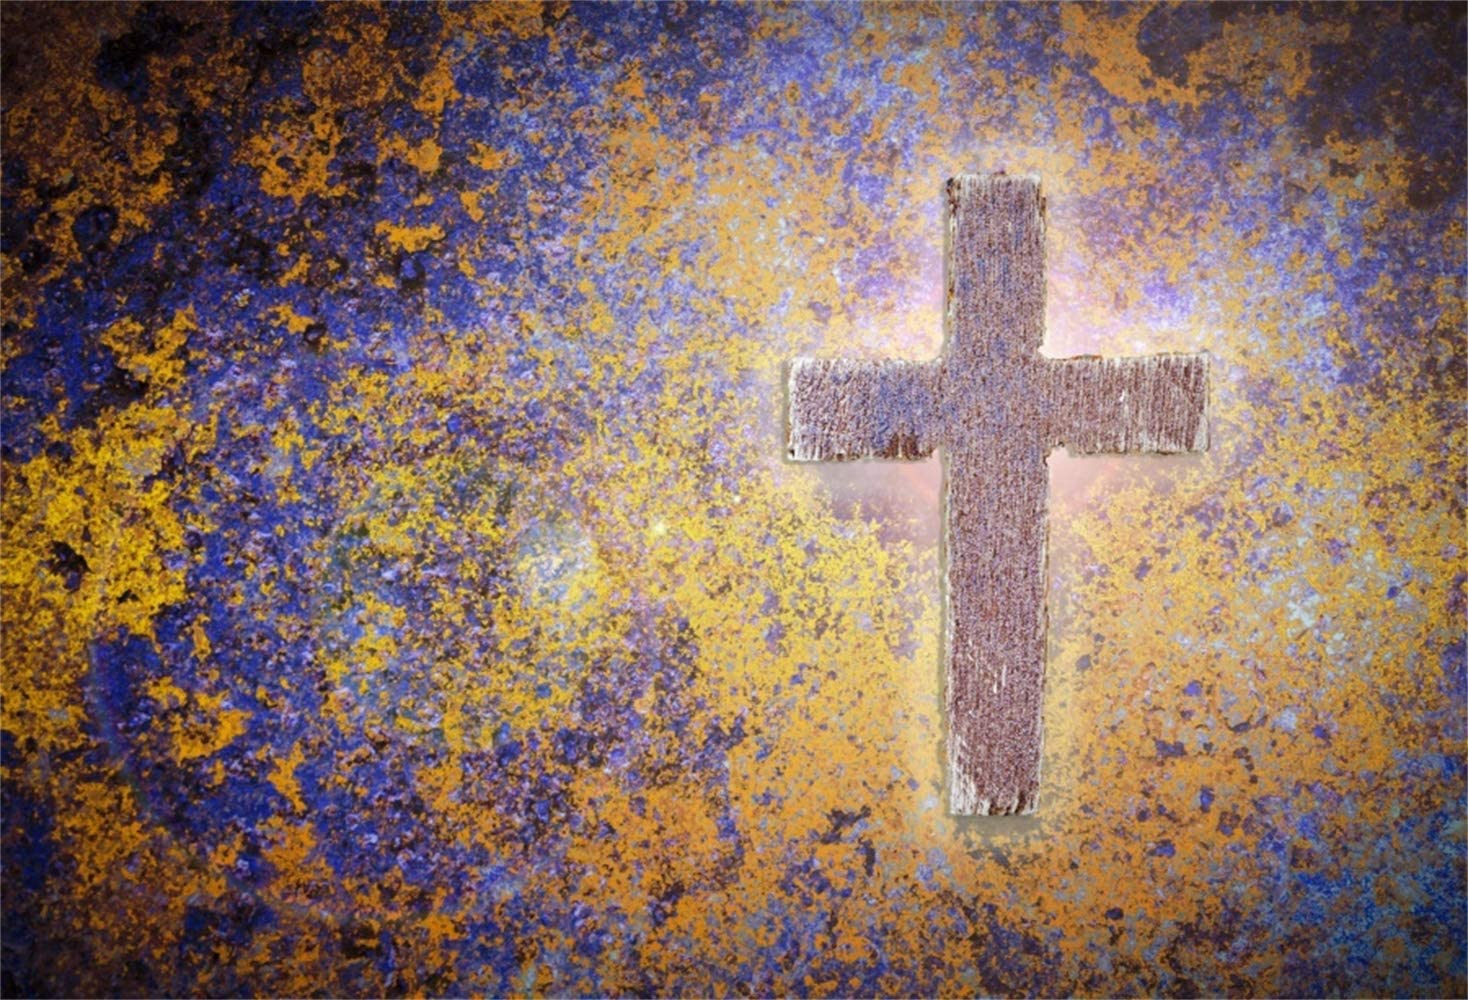 Easter Theme 10x6.5ft Polyester Photography Background Grunge Moldy Yellow Blue Wall with Cross Scenic Backdrop Community Activities Easter Egg Hunt Banner Wallpaper Studio Props